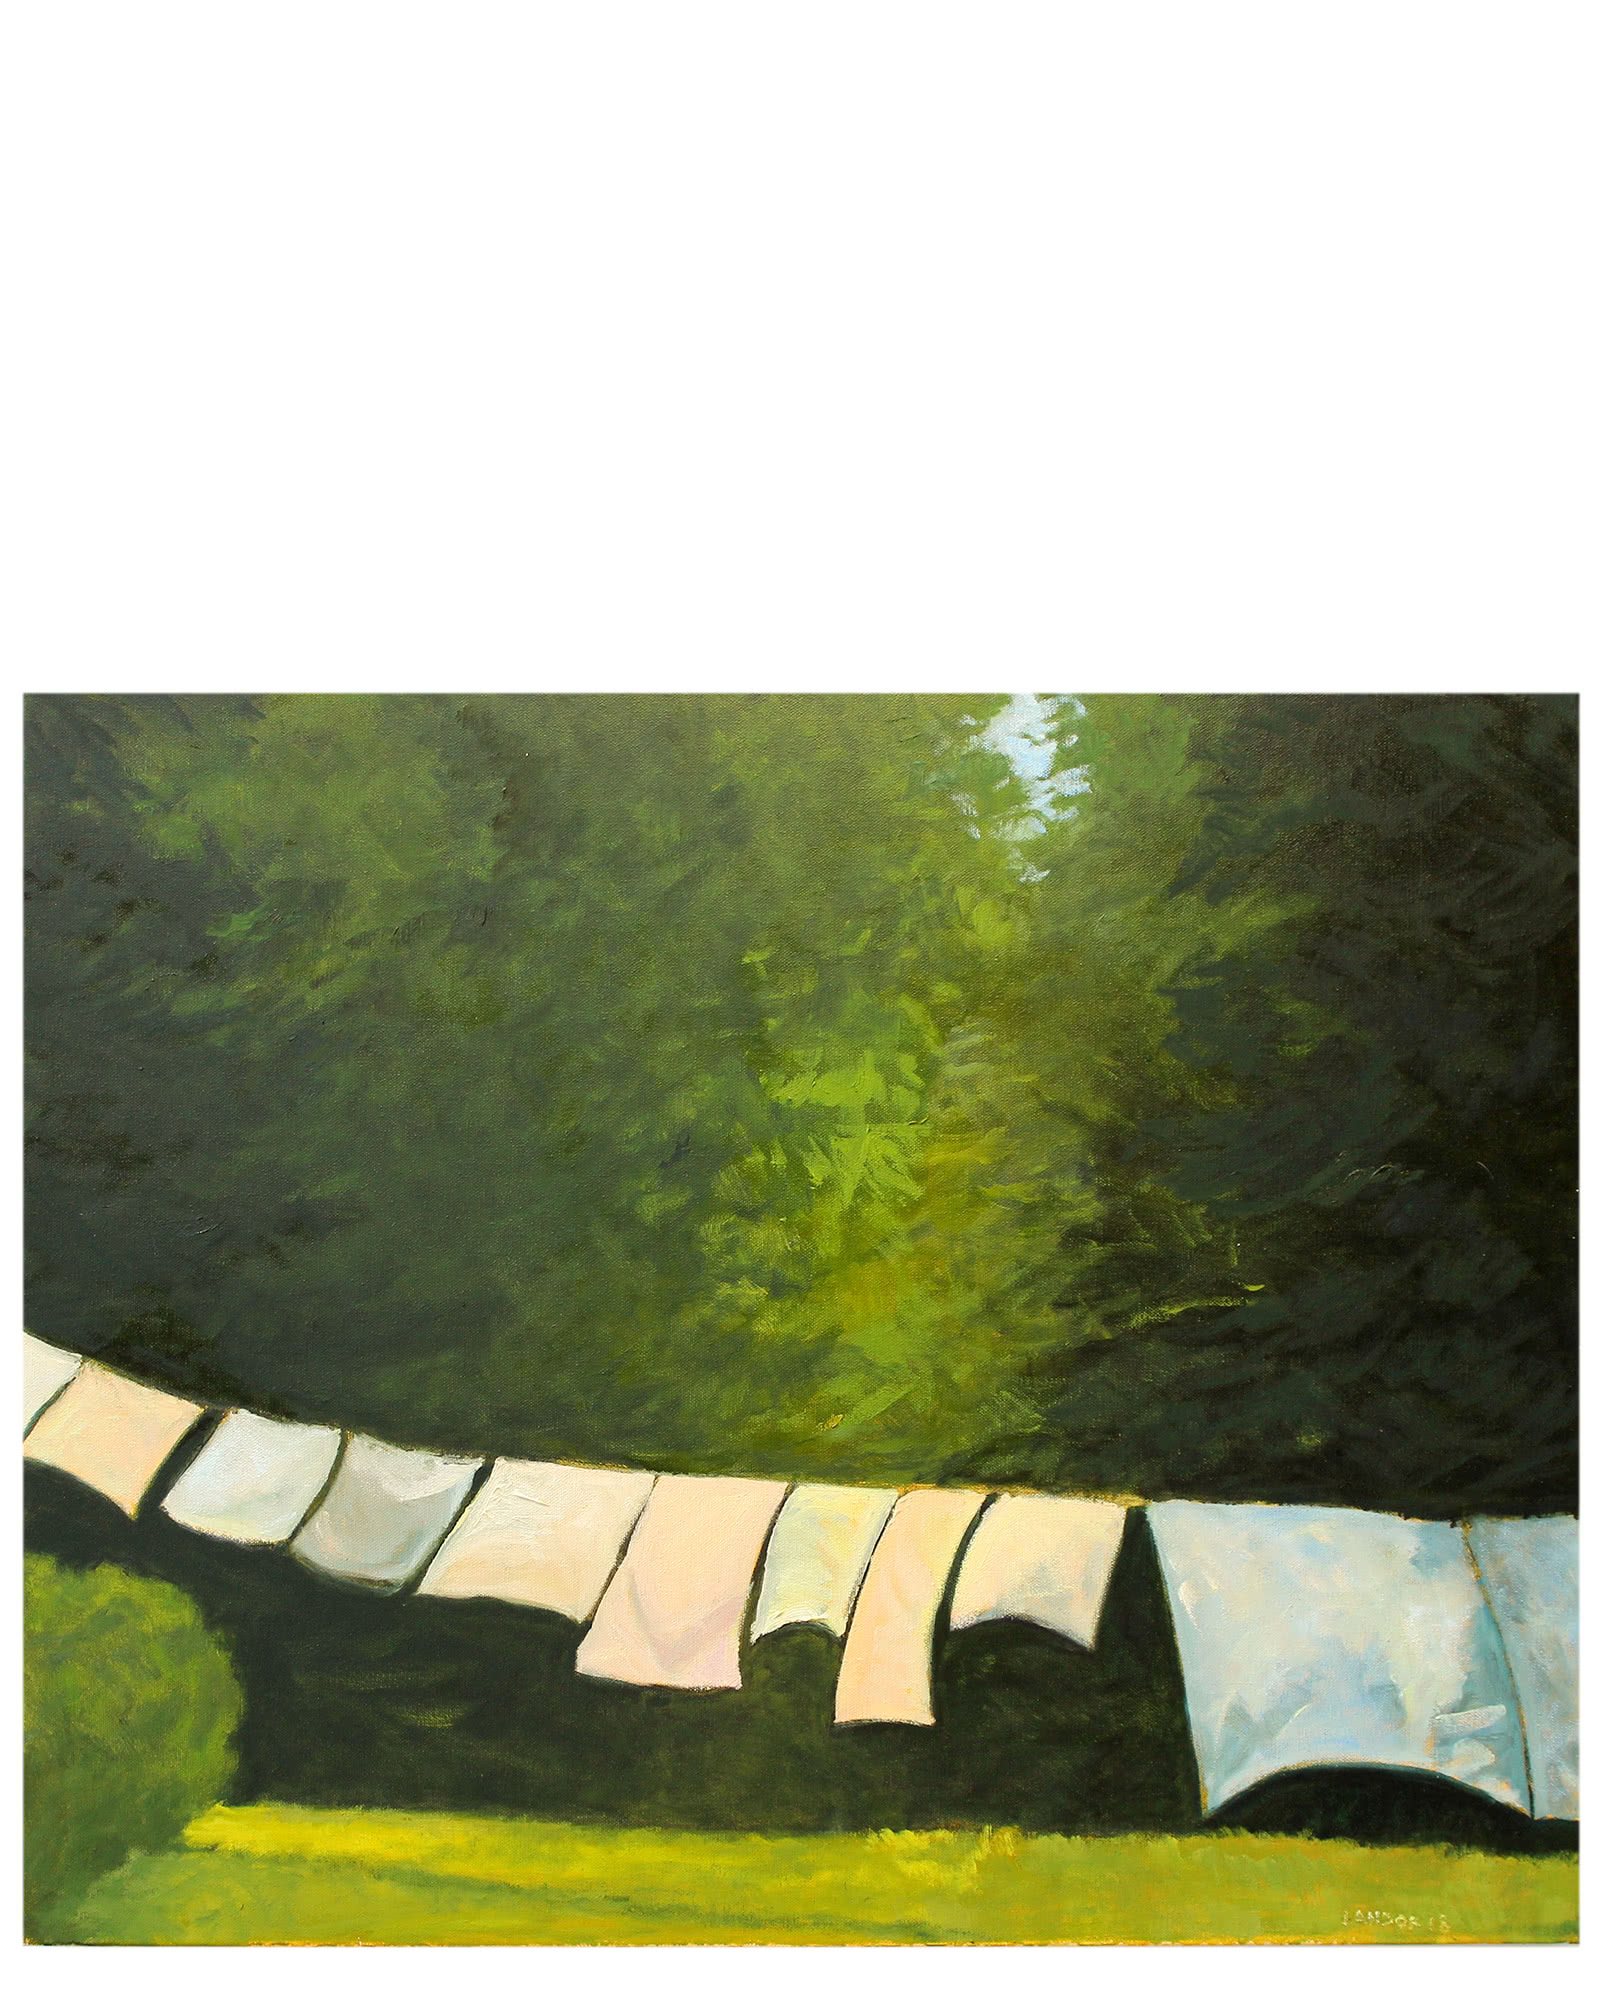 """The Day's Laundry"" by Susan Landor Keegin,"